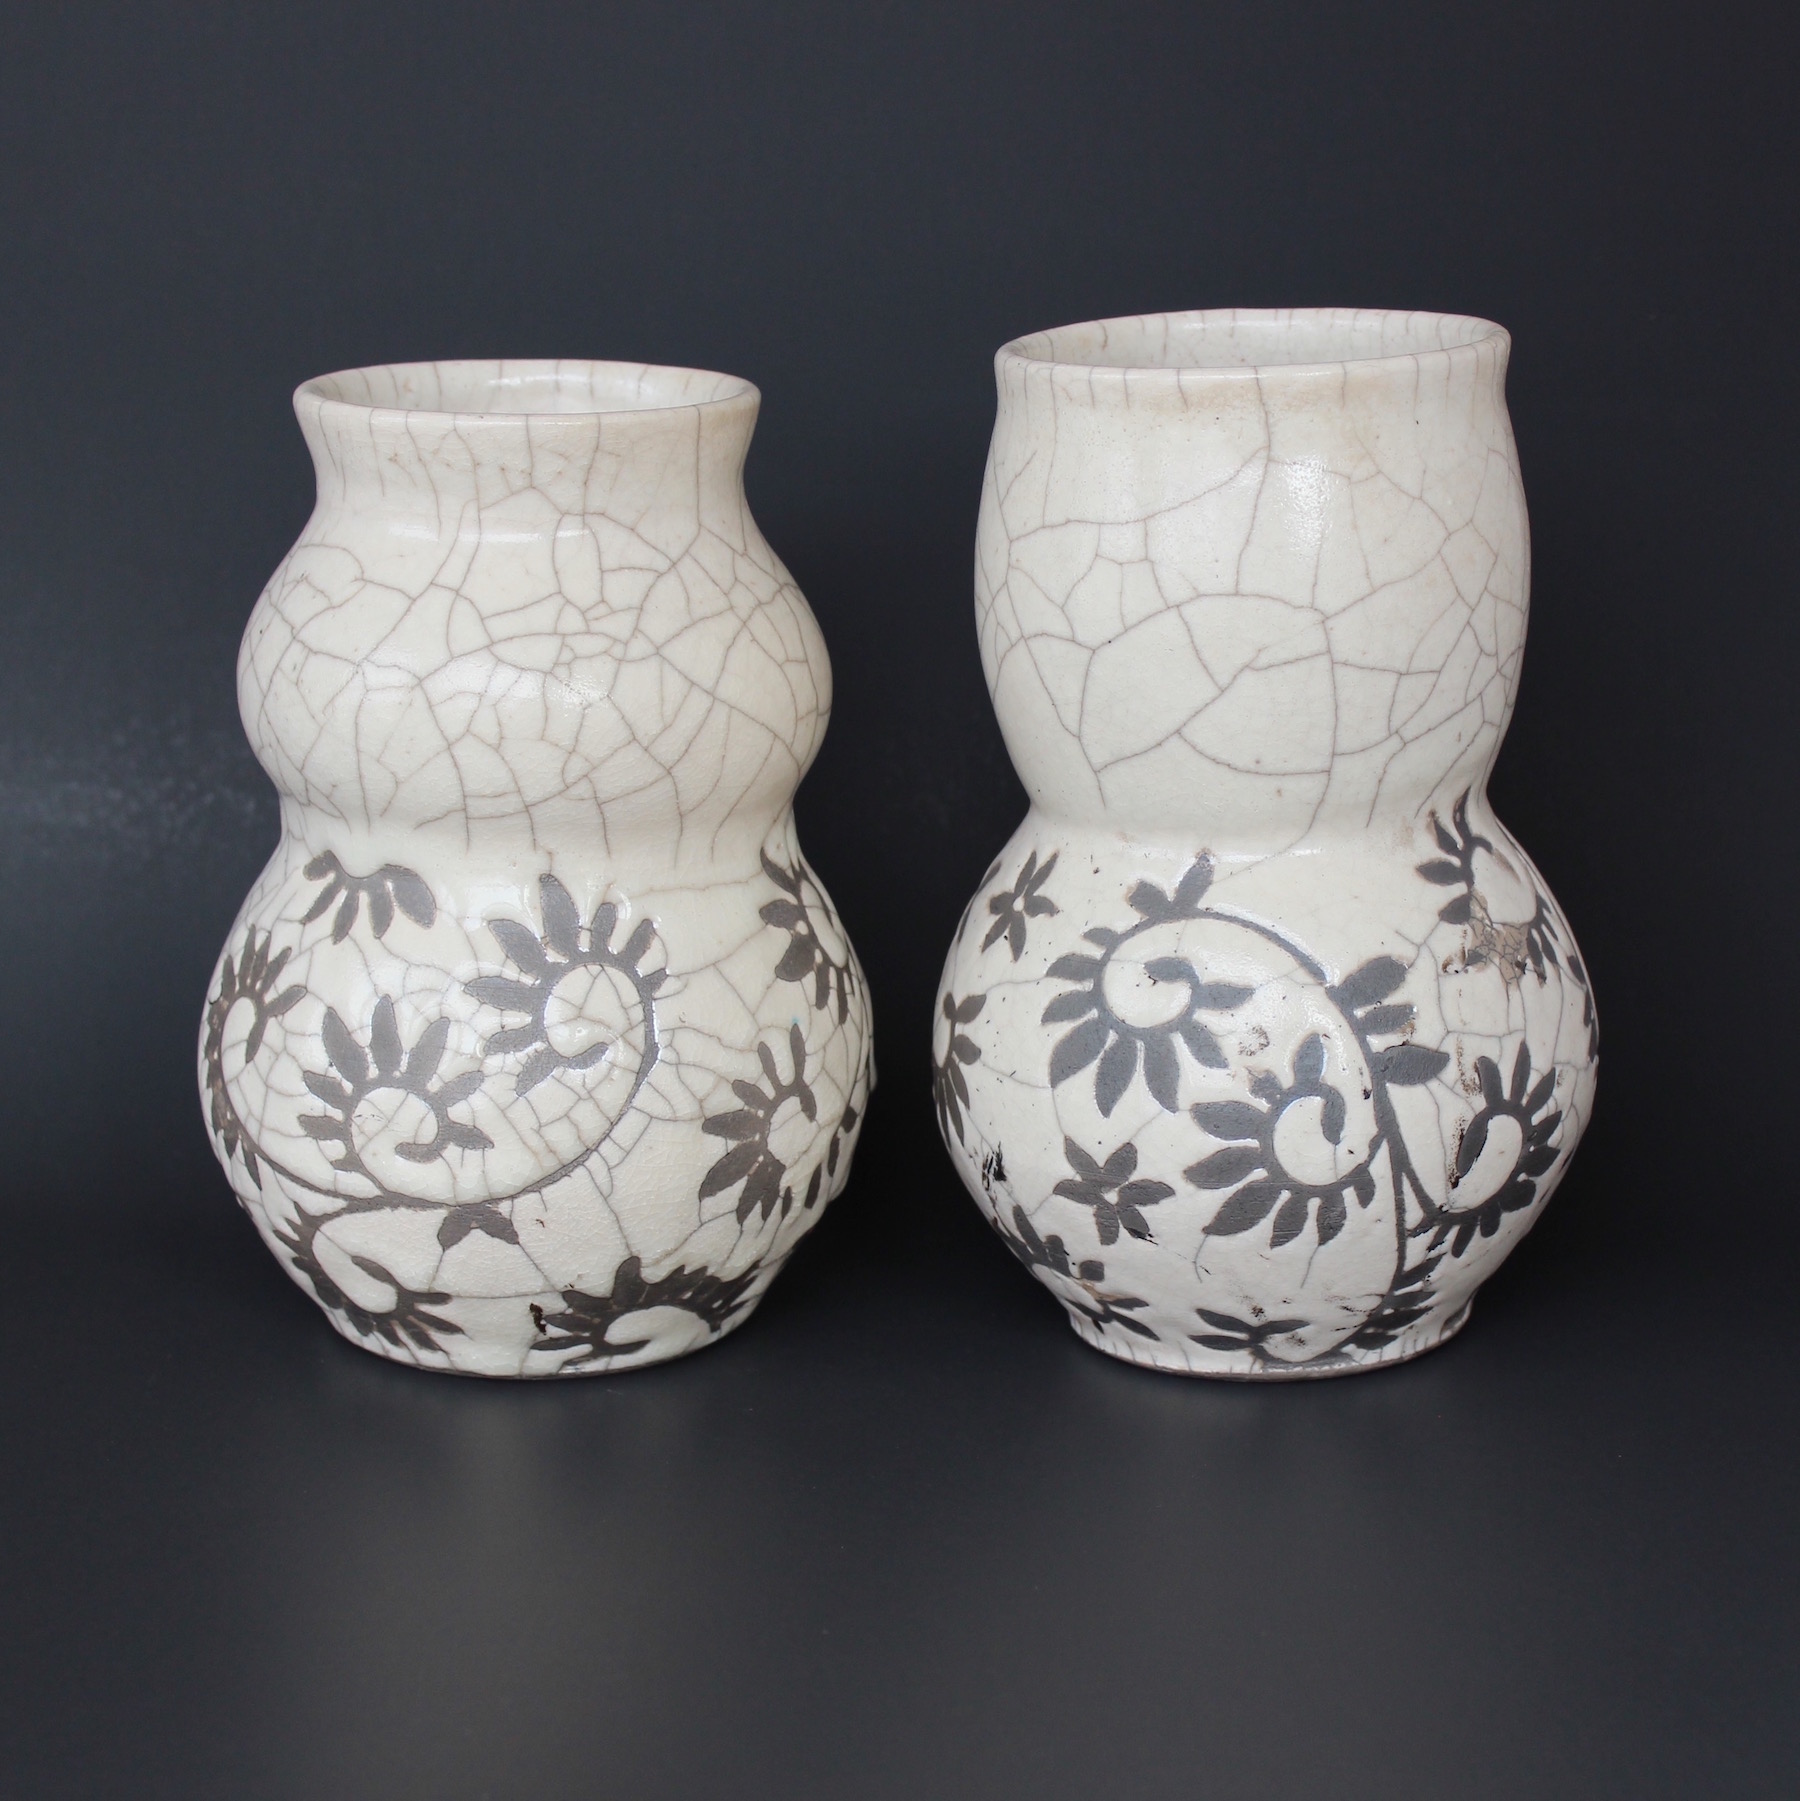 White Crackle Raku Vases